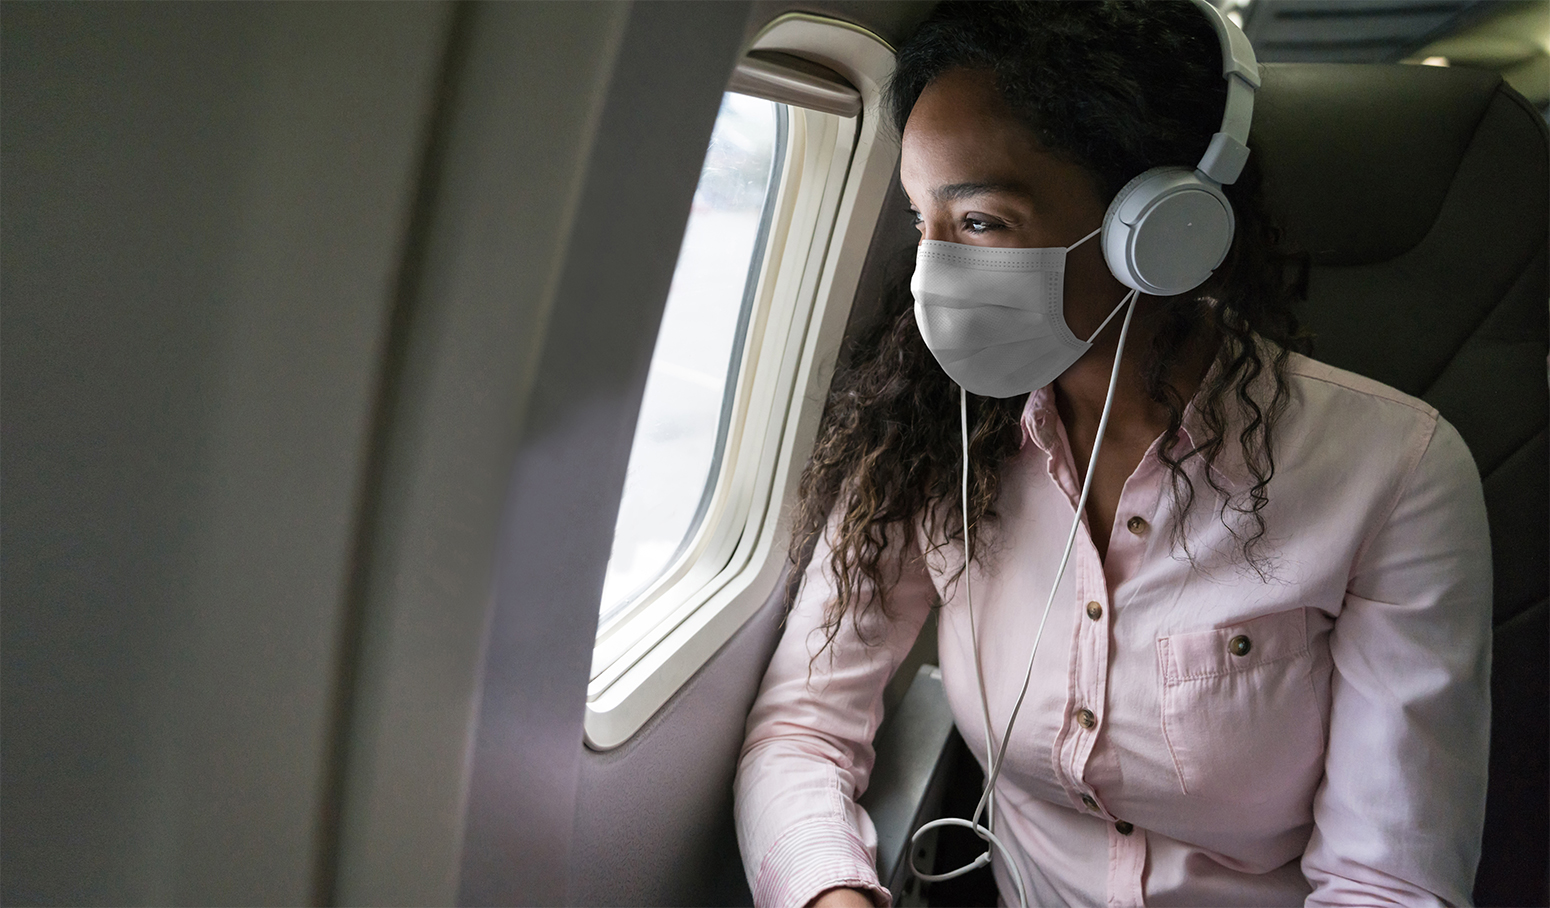 Woman wearing a mask on an airplane